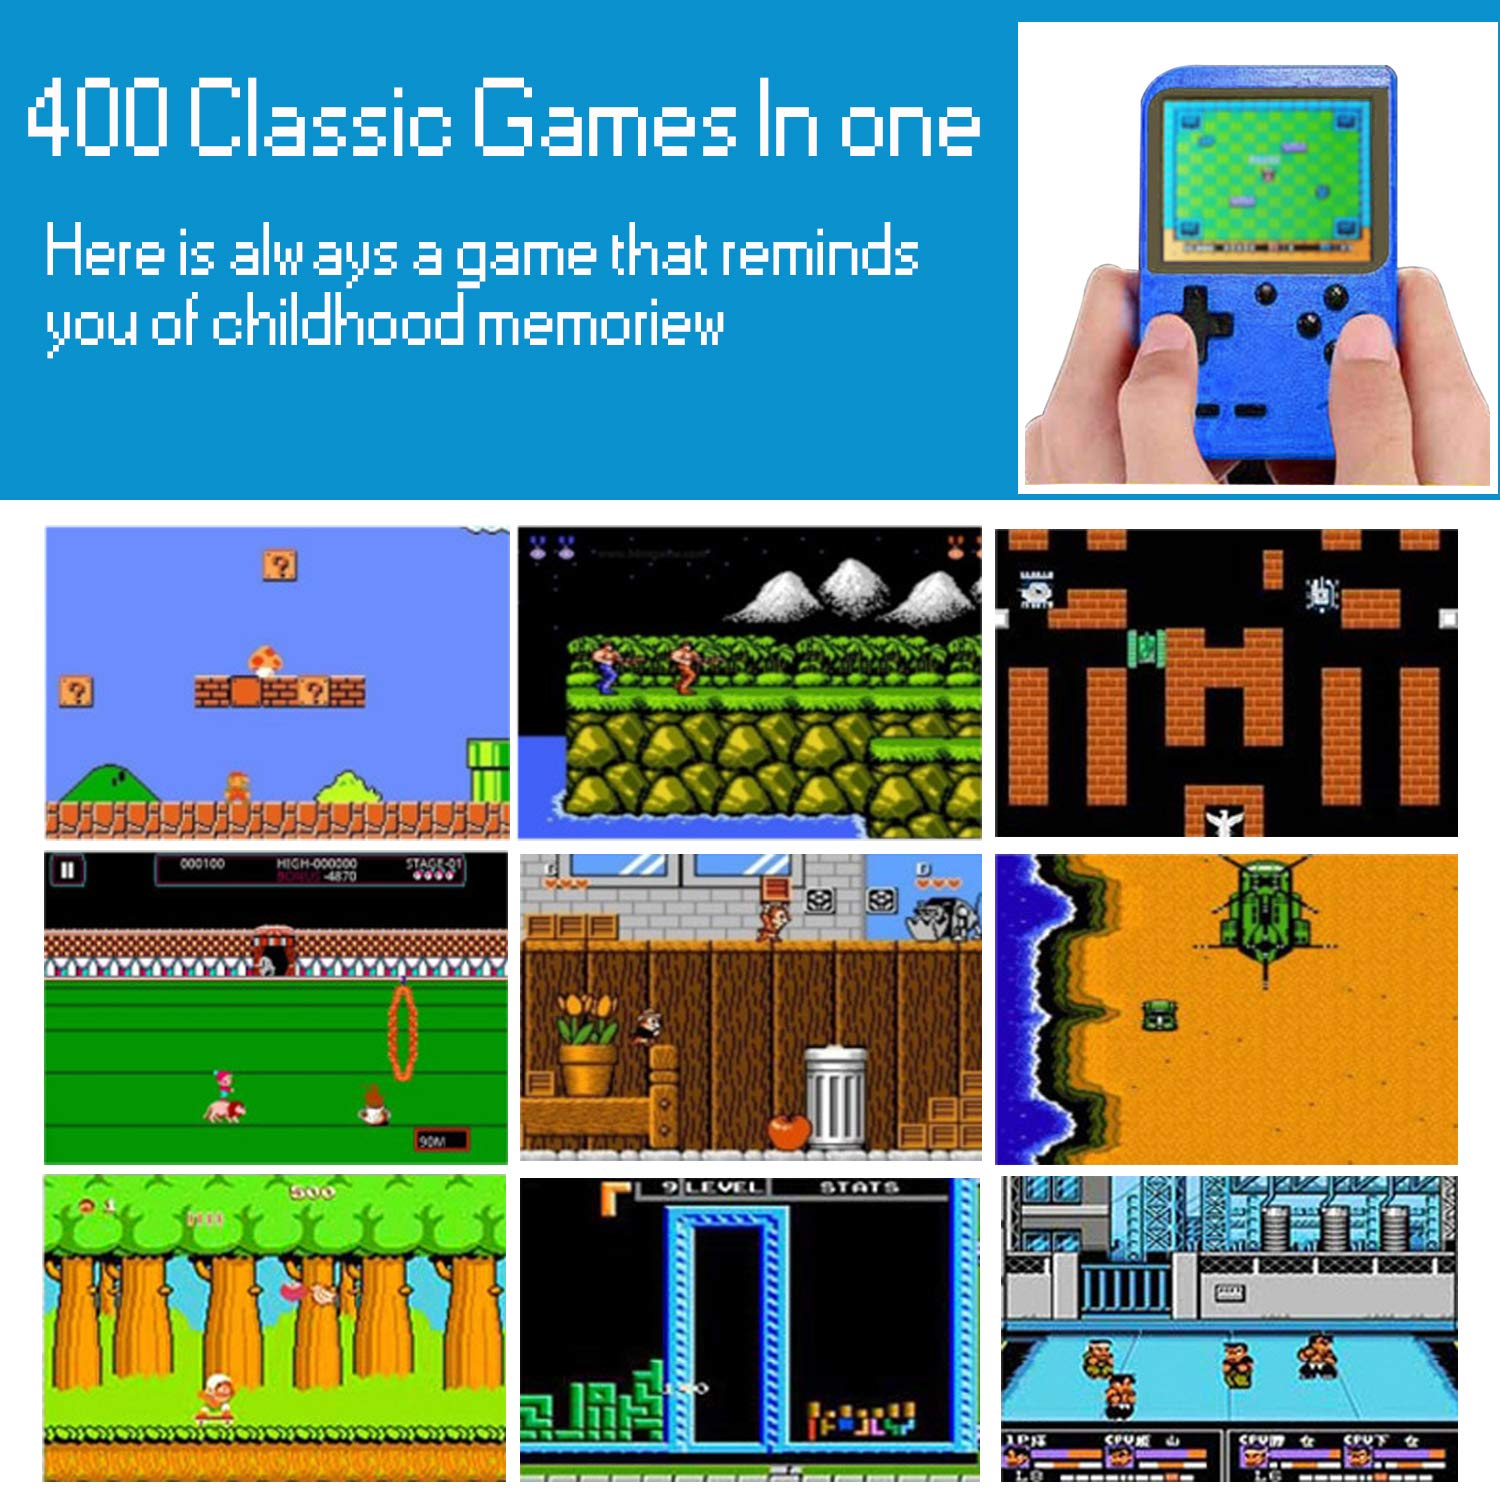 Handheld Game Console, Kiztoys Retro Video Games Console for kids with 400 Classic Games, Supporting 2 Players and TV Connection, 800 mAh Rechargeable Battery